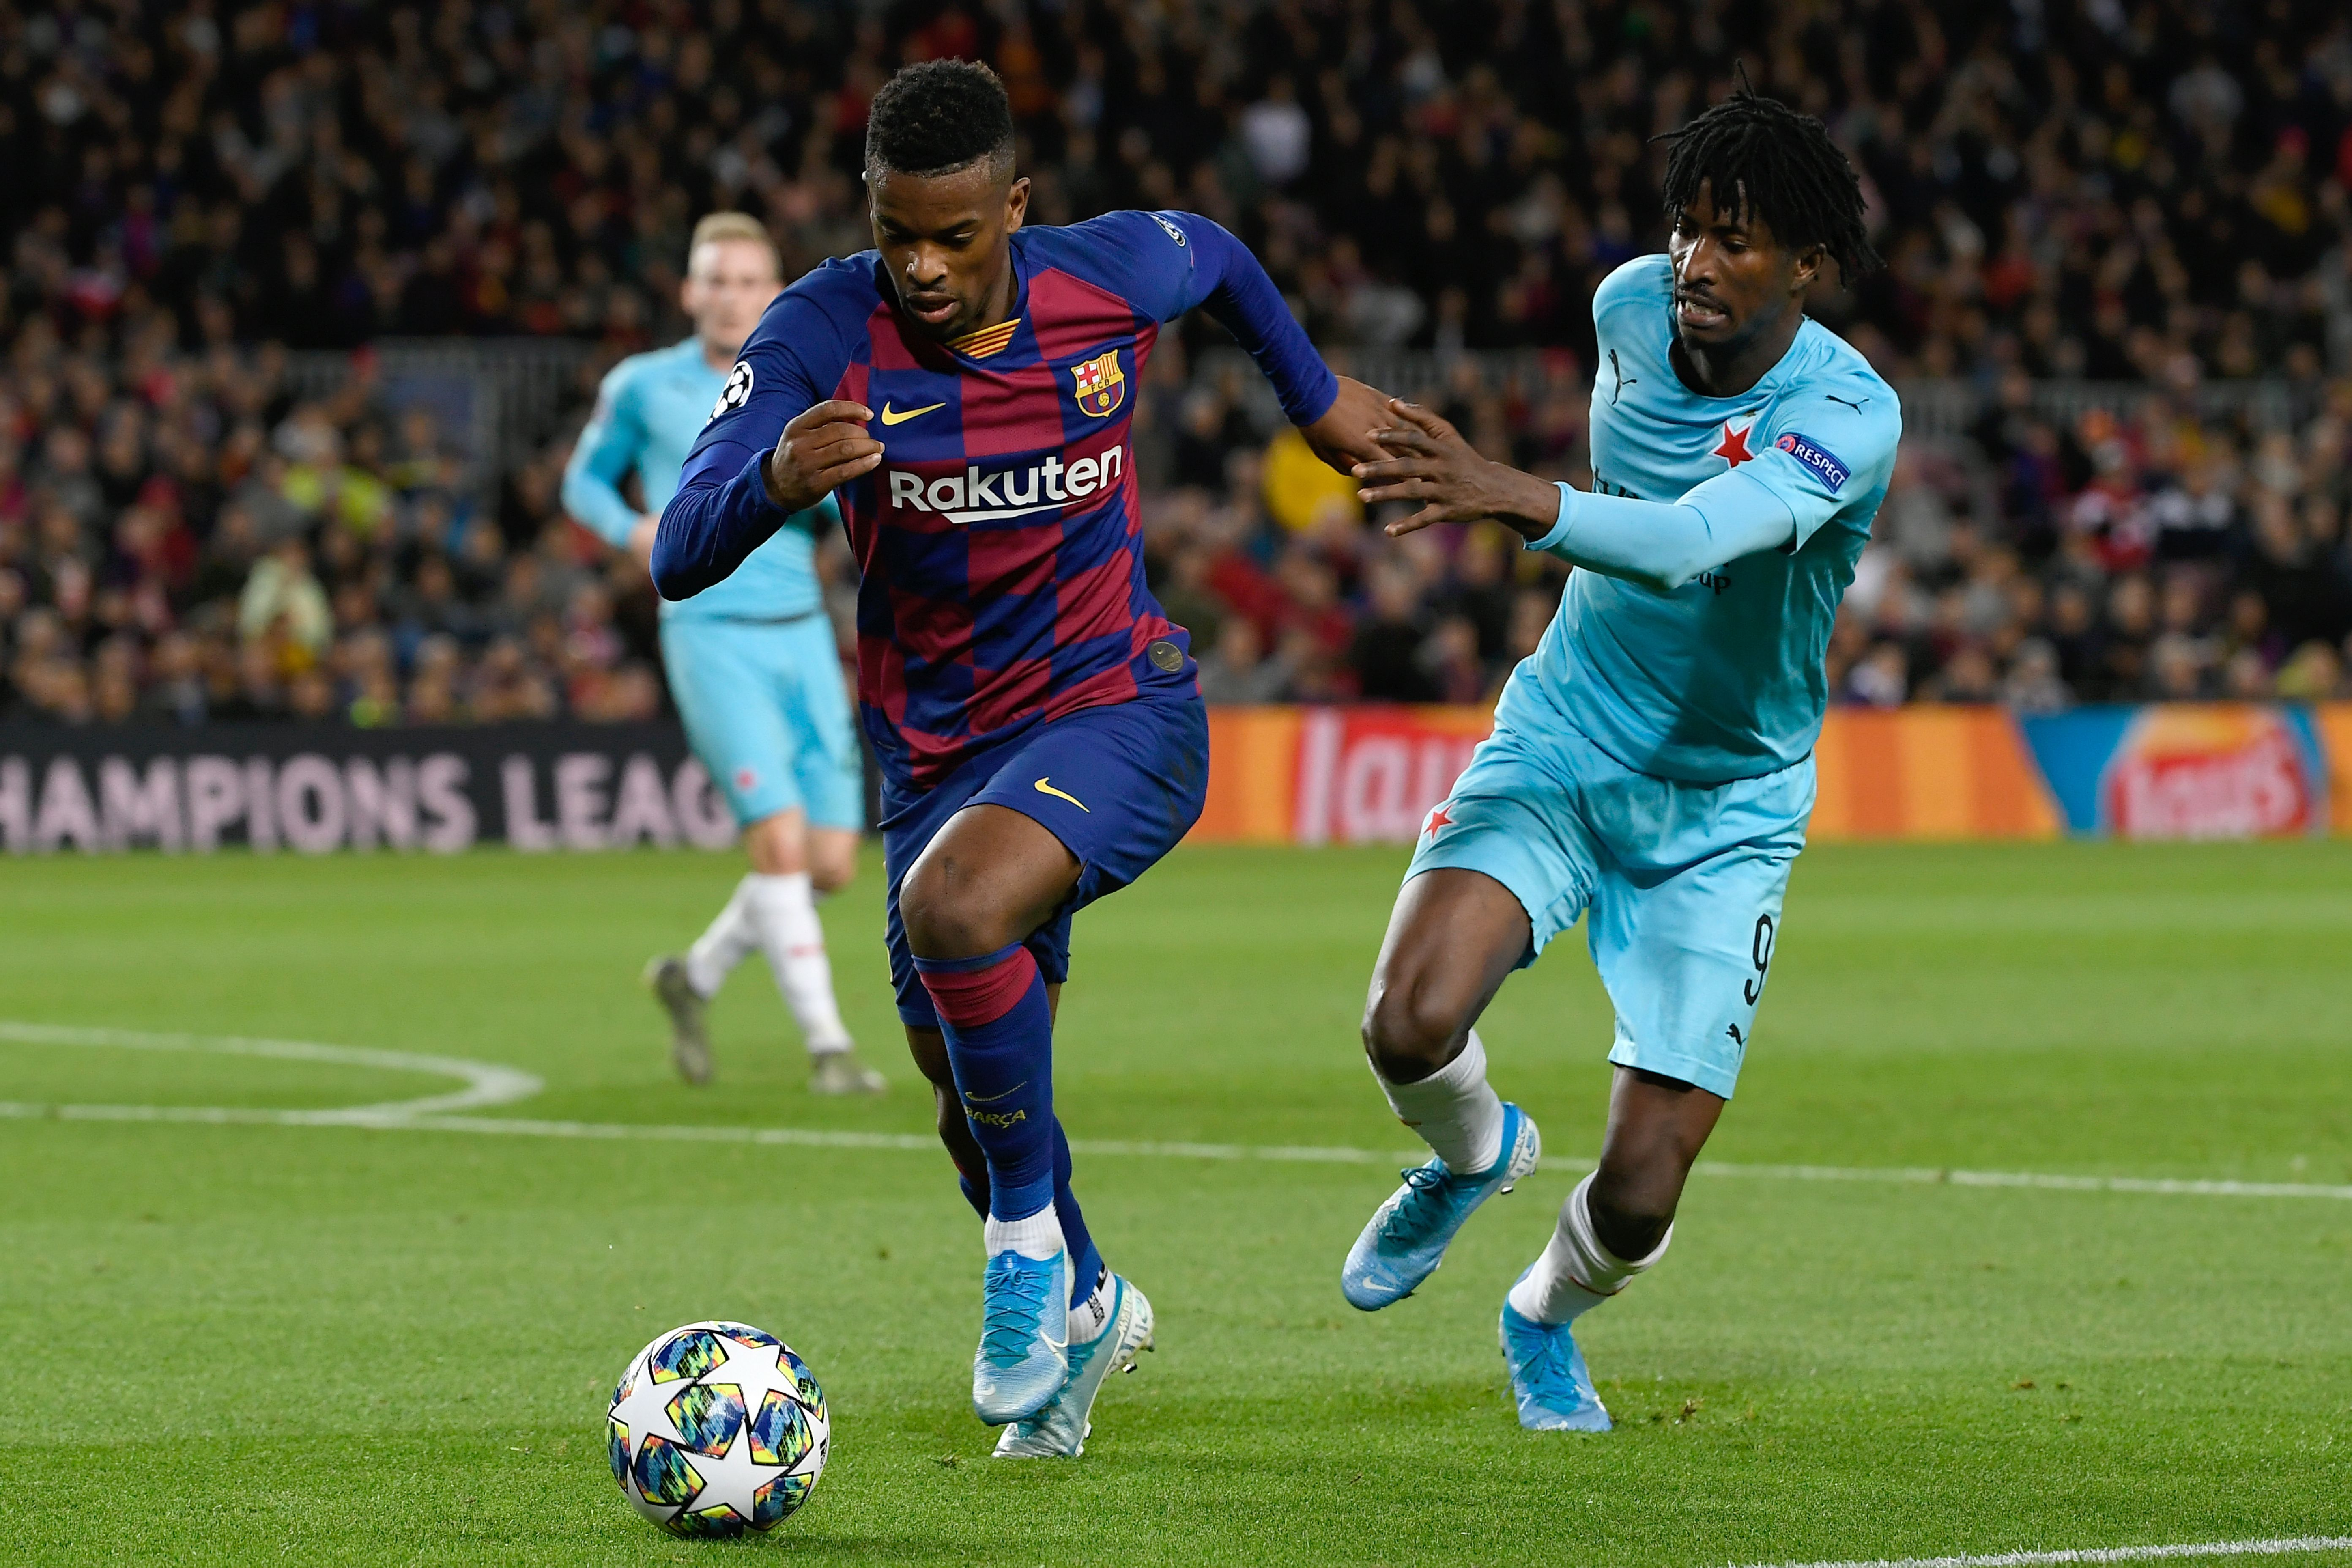 Semedo was given a tough time by Peter Olayinka (Photo by LLUIS GENE/AFP via Getty Images)